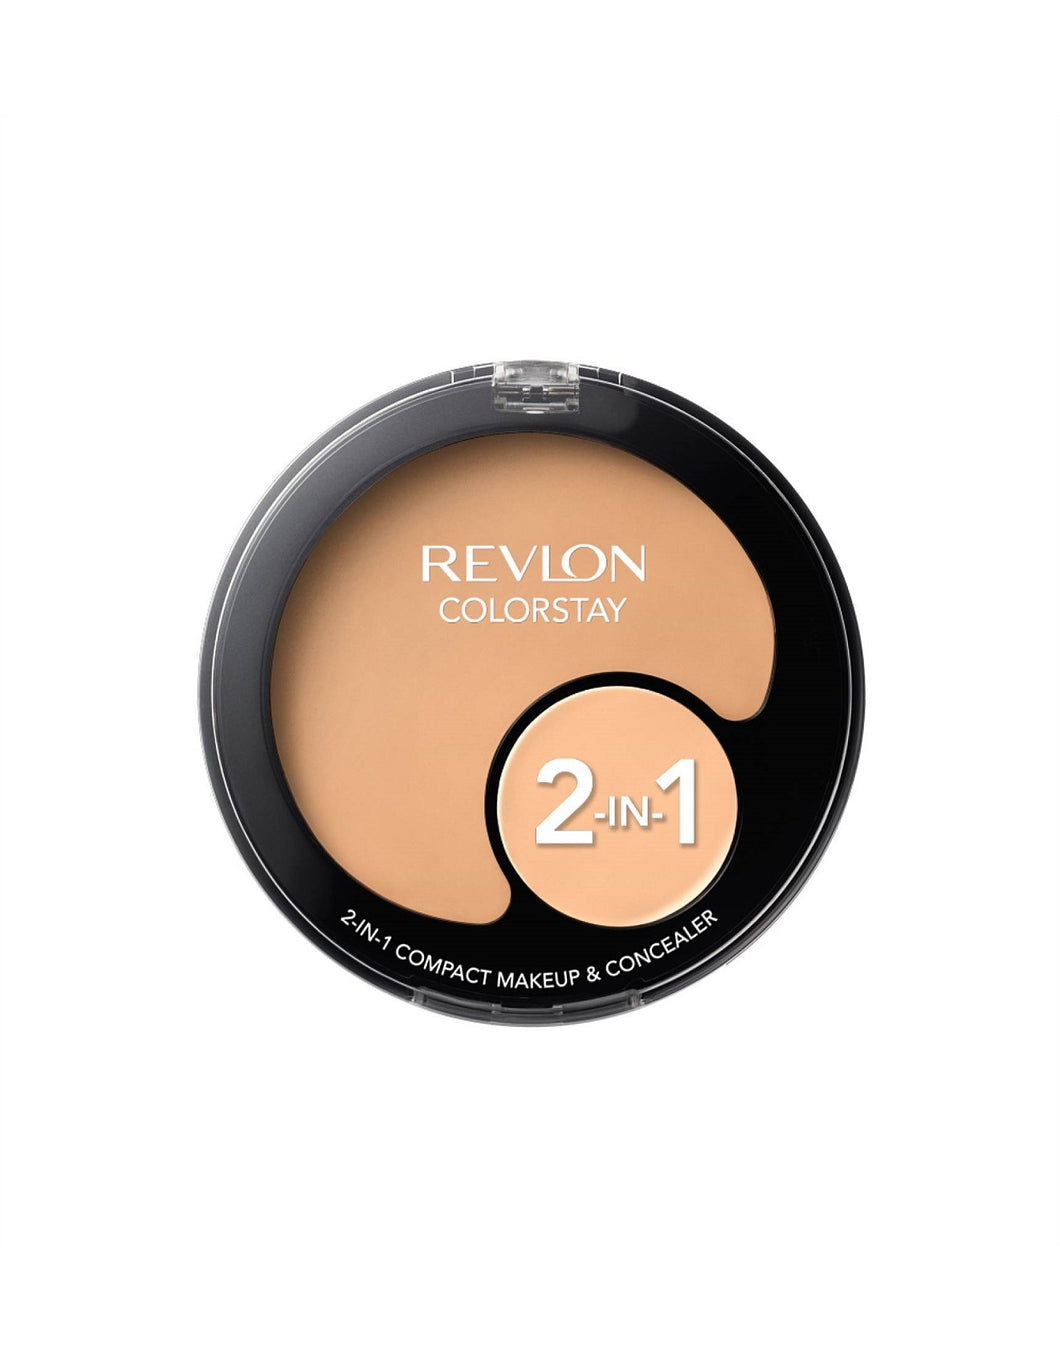 Revlon Colorstay 2-in-1 Compact Makeup and Concealer Nude 200